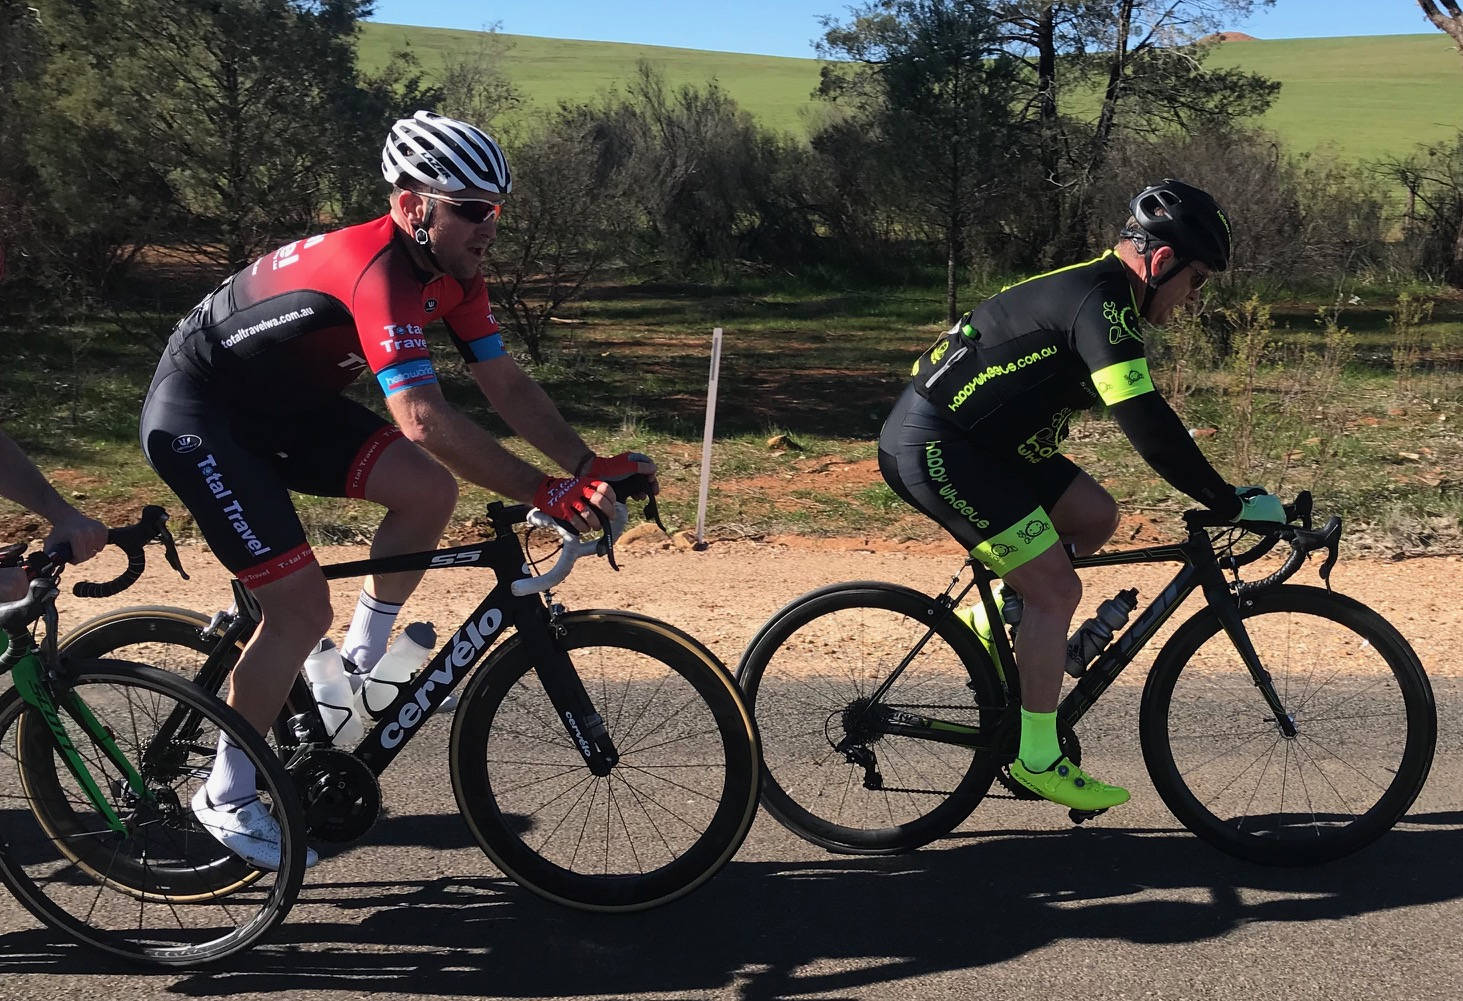 Cootamundra 115k Handicap @ 17 August - Peter Budd at the 80k mark just 2 minutes behind the lead riders